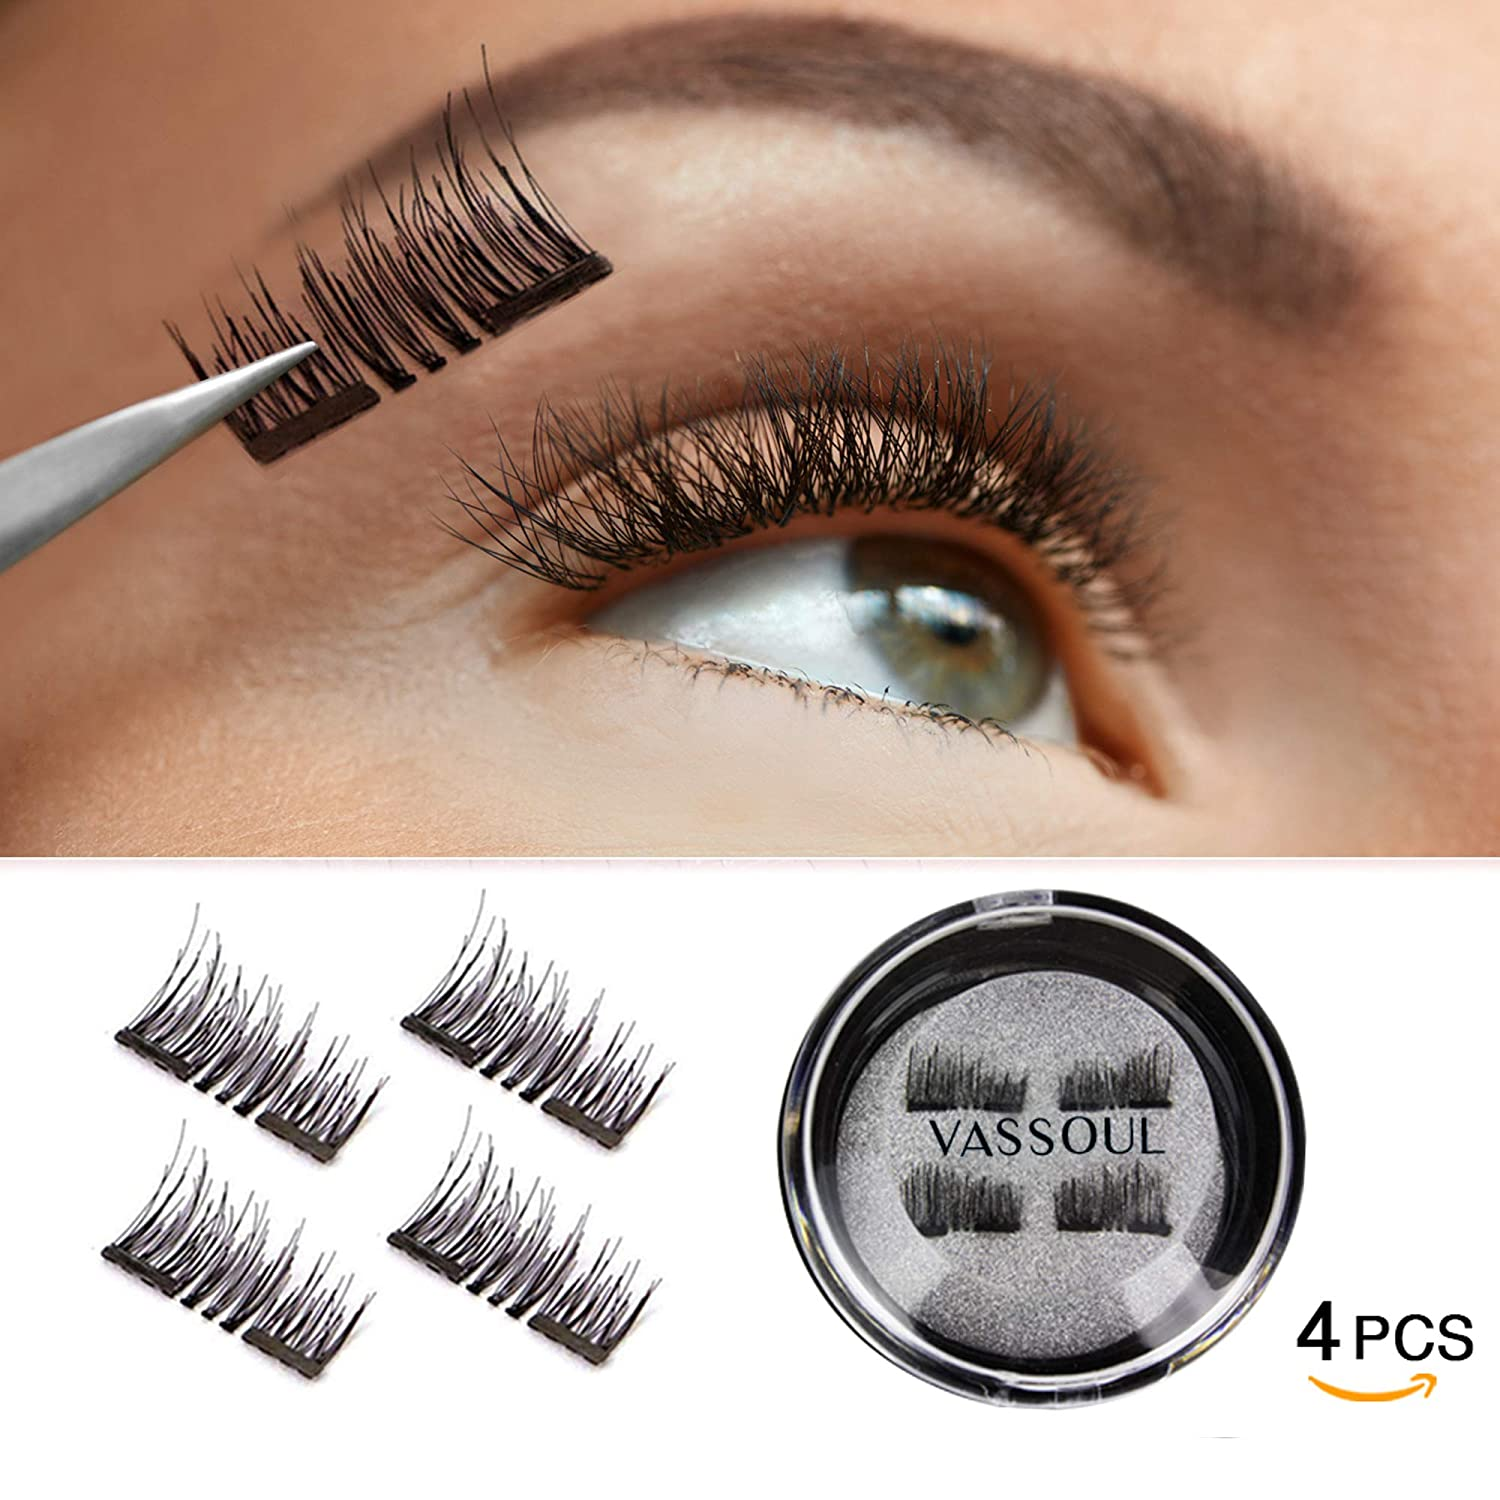 12a516ac81d Amazon.com: VASSOUL Dual Magnetic Eyelashes-0.2mm Ultra Thin Magnet- Lightweight & Easy to Wear-Best 3D Reusable Eyelashes Extensions: Beauty